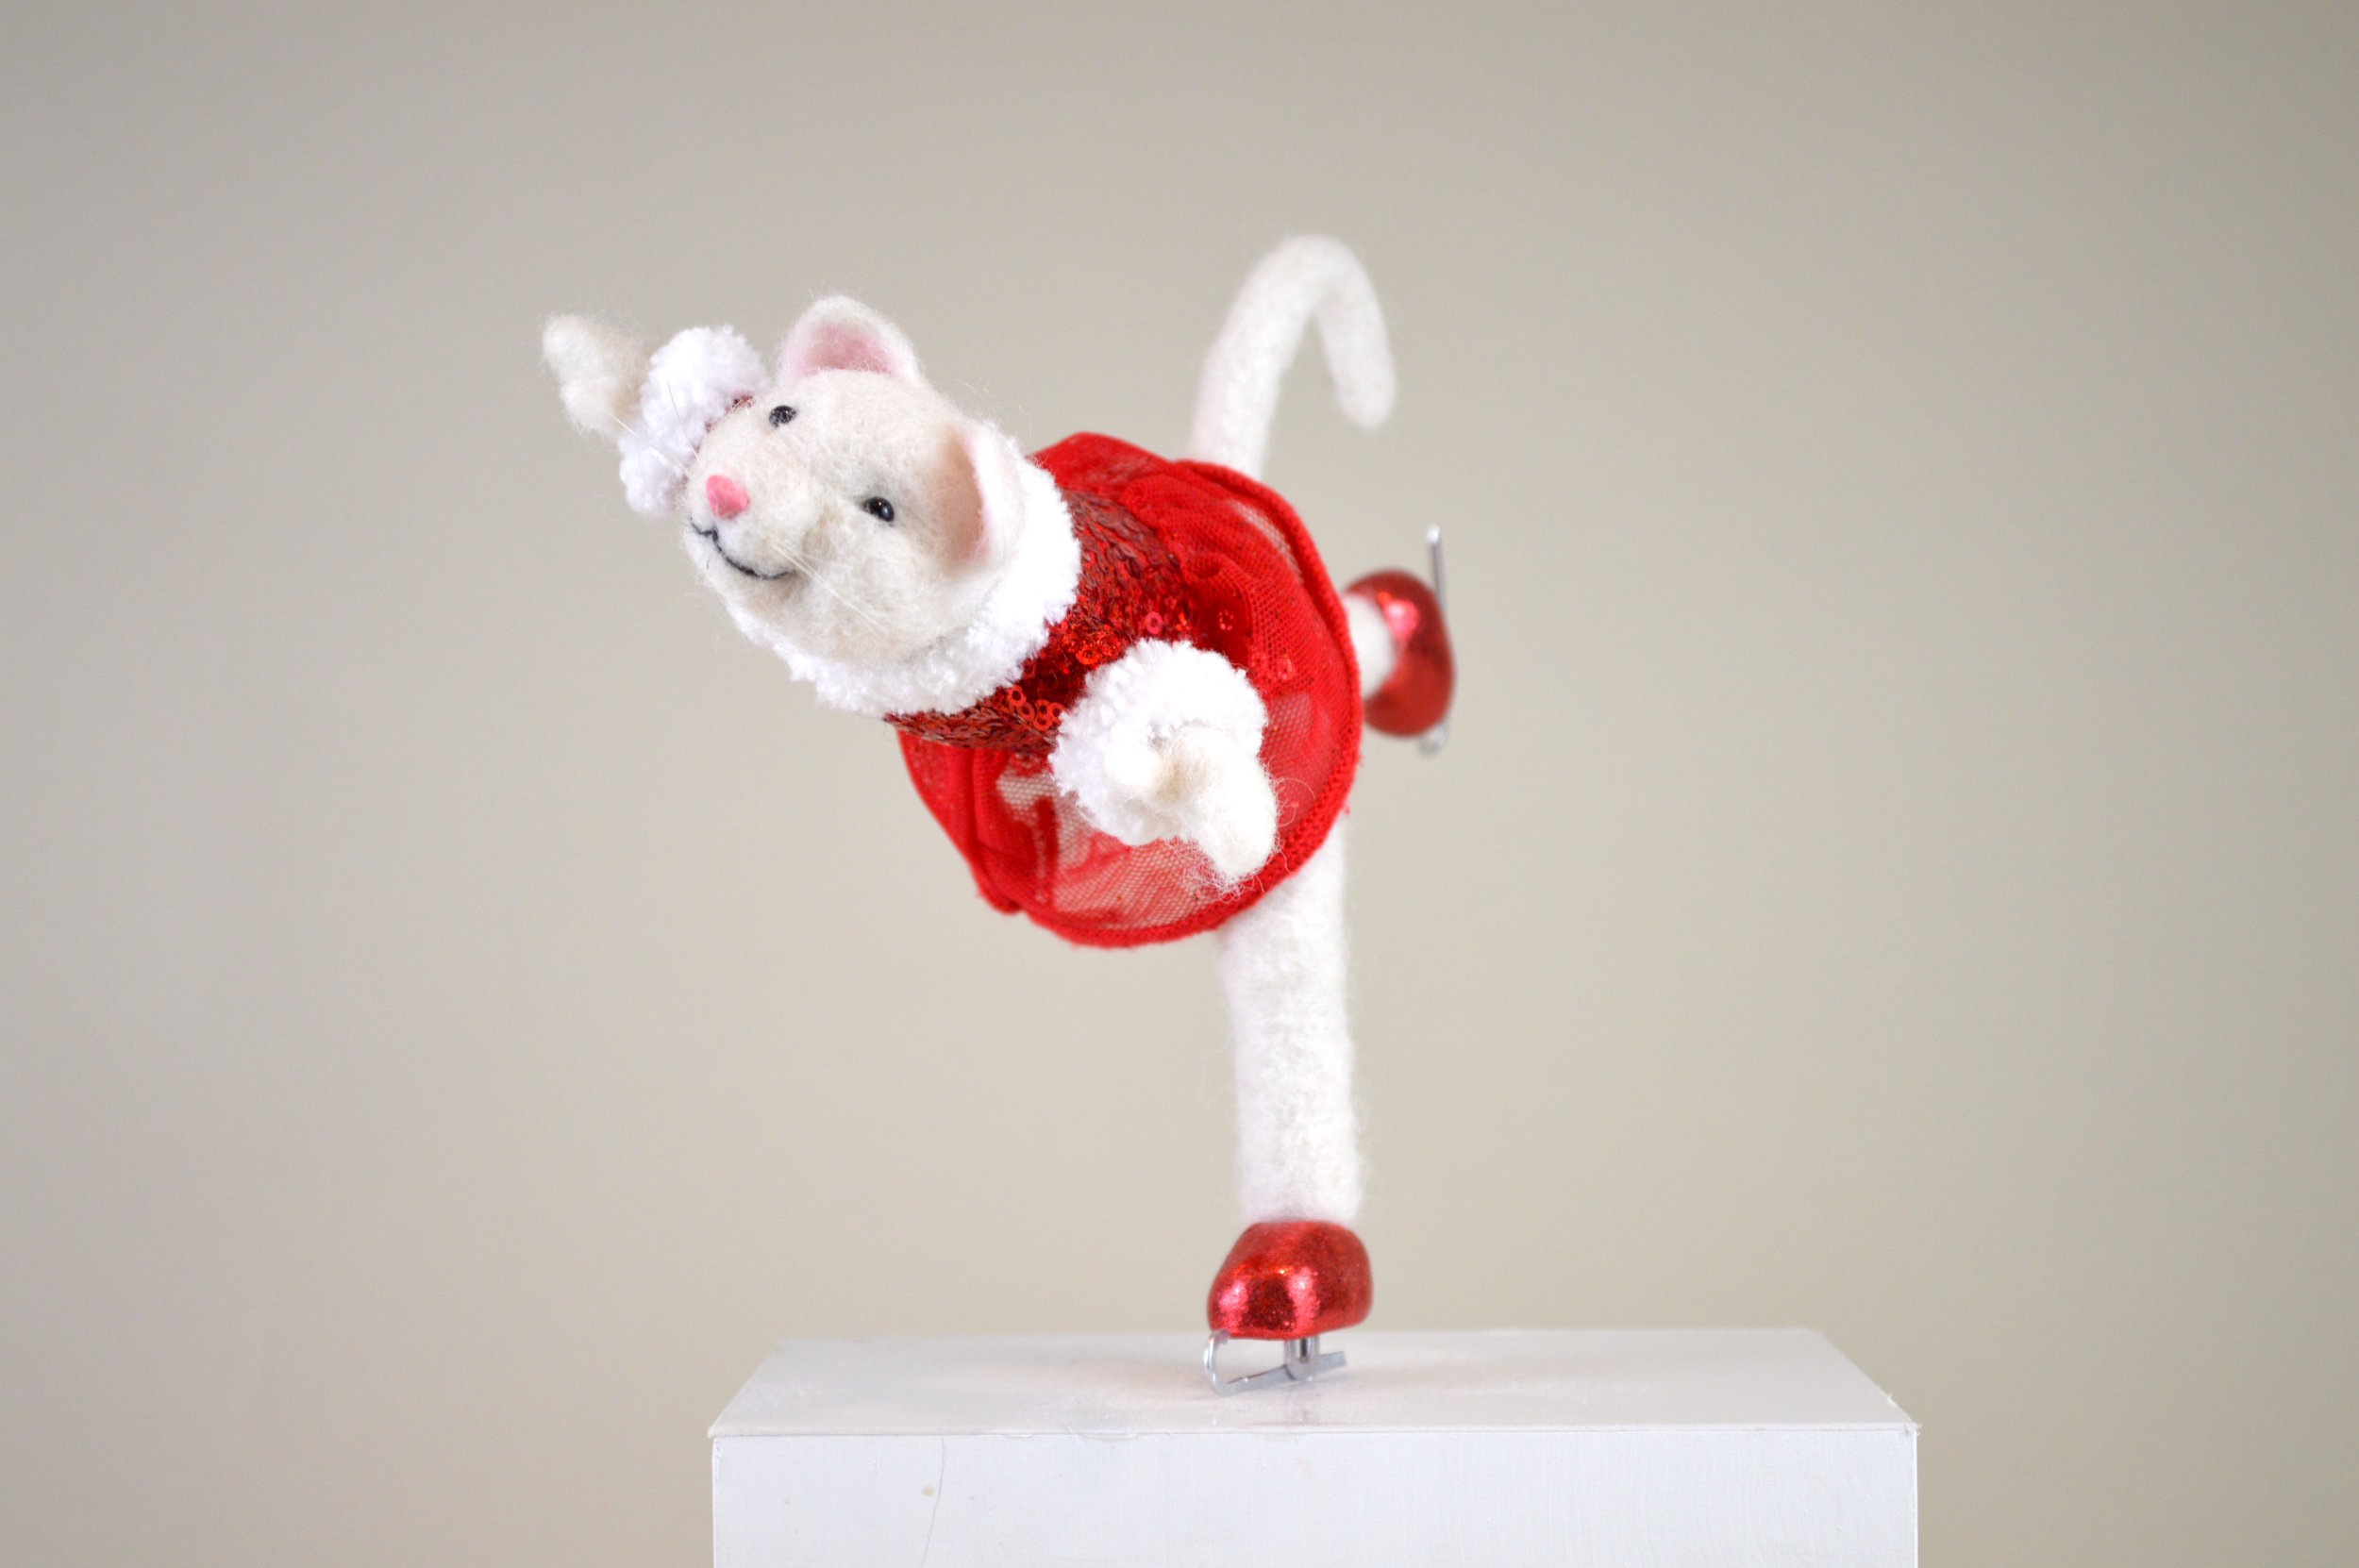 Skating Kitty in Red Close-Up.jpg